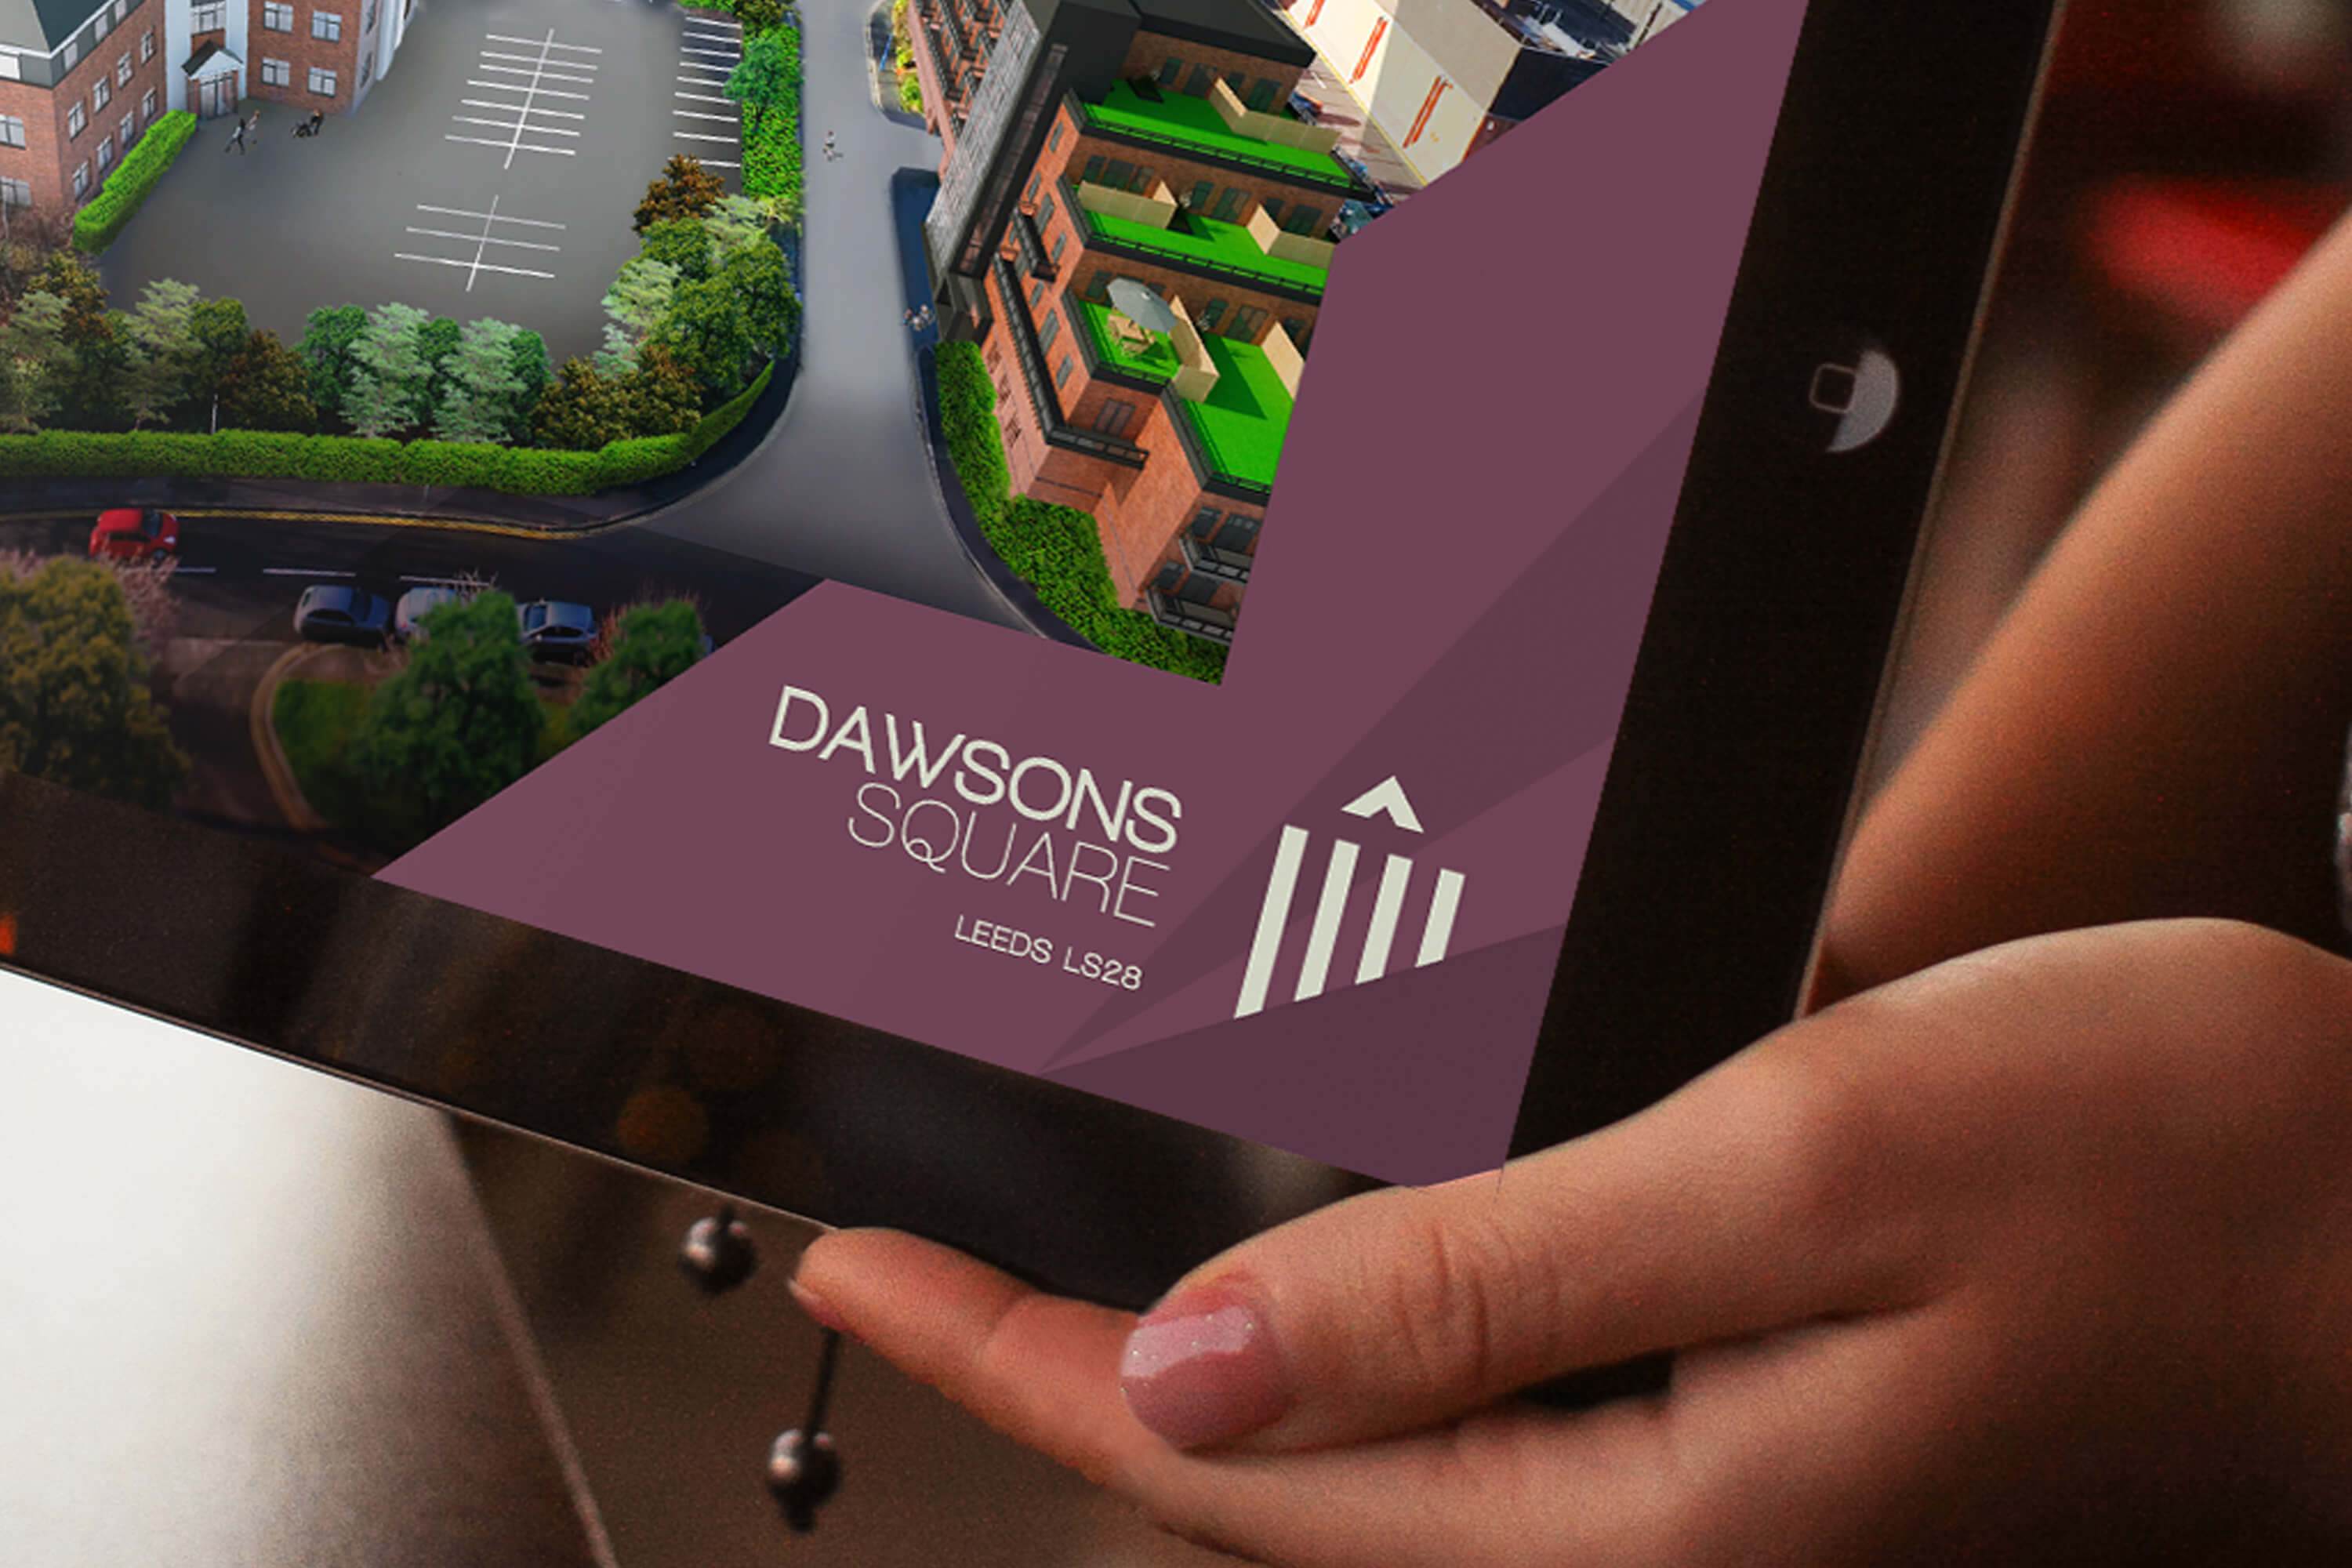 Close up of a tablet corner, showing the Dawsons Square brand design